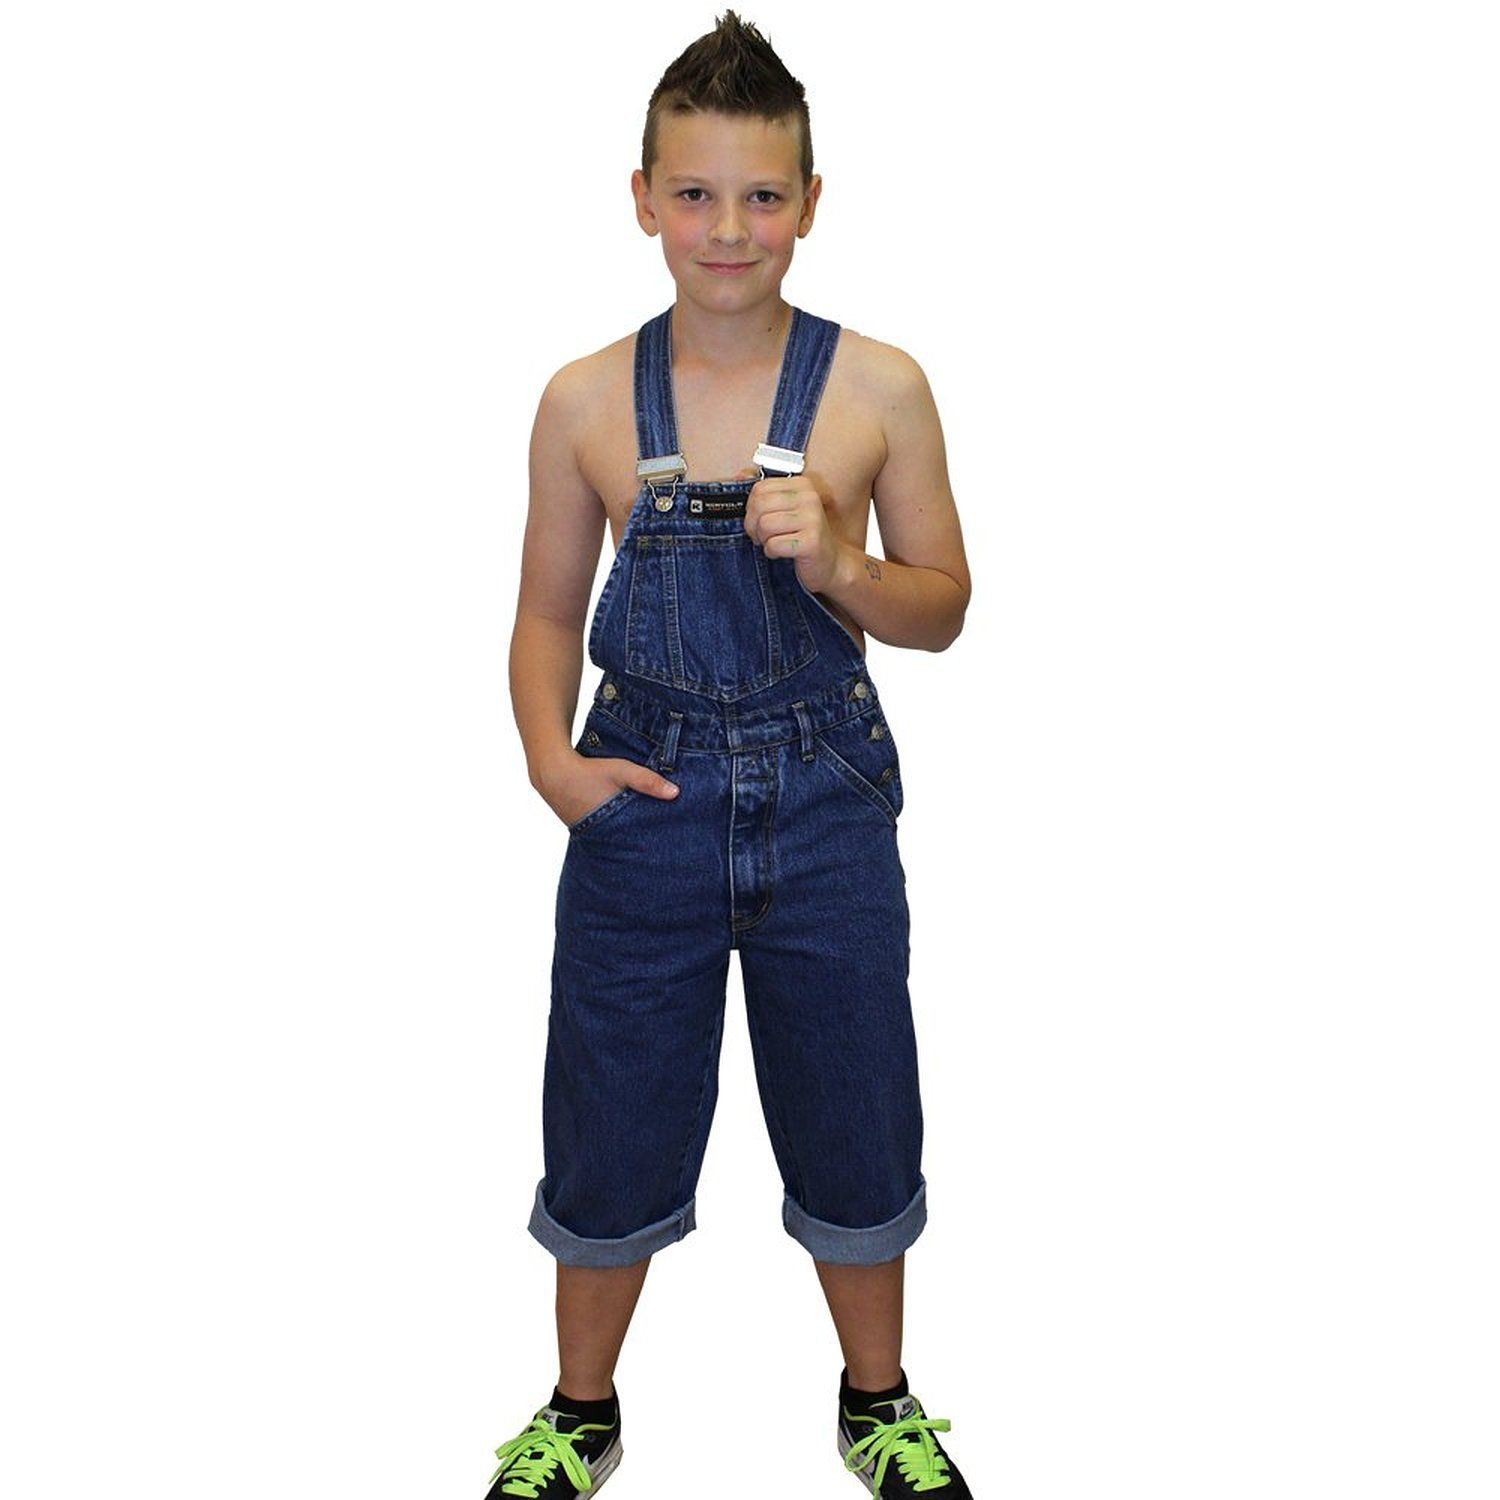 Enjoy free shipping and easy returns every day at Kohl's. Find great deals on Boys Overalls Clothing at Kohl's today!